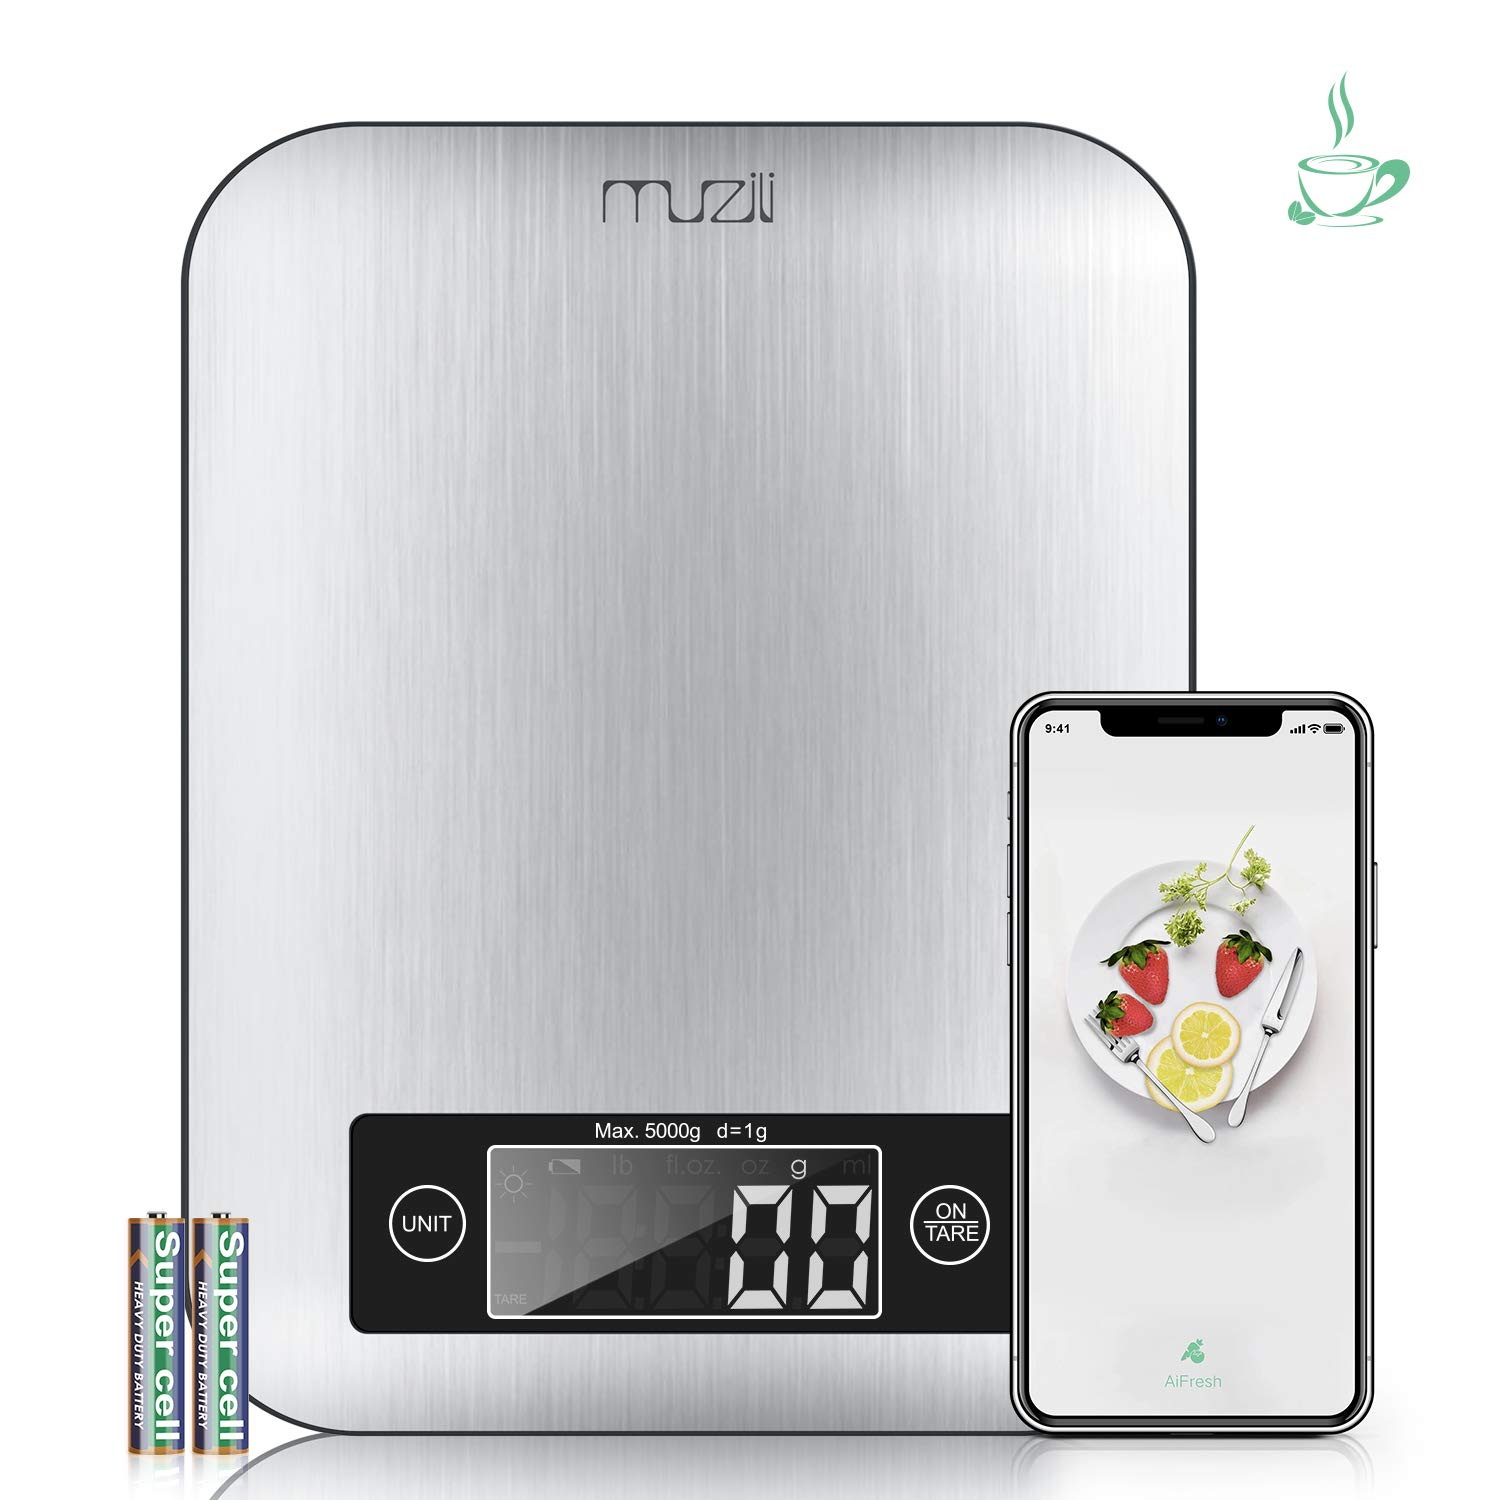 Muzili Smart Kitchen Scale with Nutritional Calculator and Timer, 3 in 1 Functions as Food Scale, Coffee Scale, Digital Kitchen Scale, APP Controlled to Show Calorie, Protein,Fat or so for Health Life by Muzili